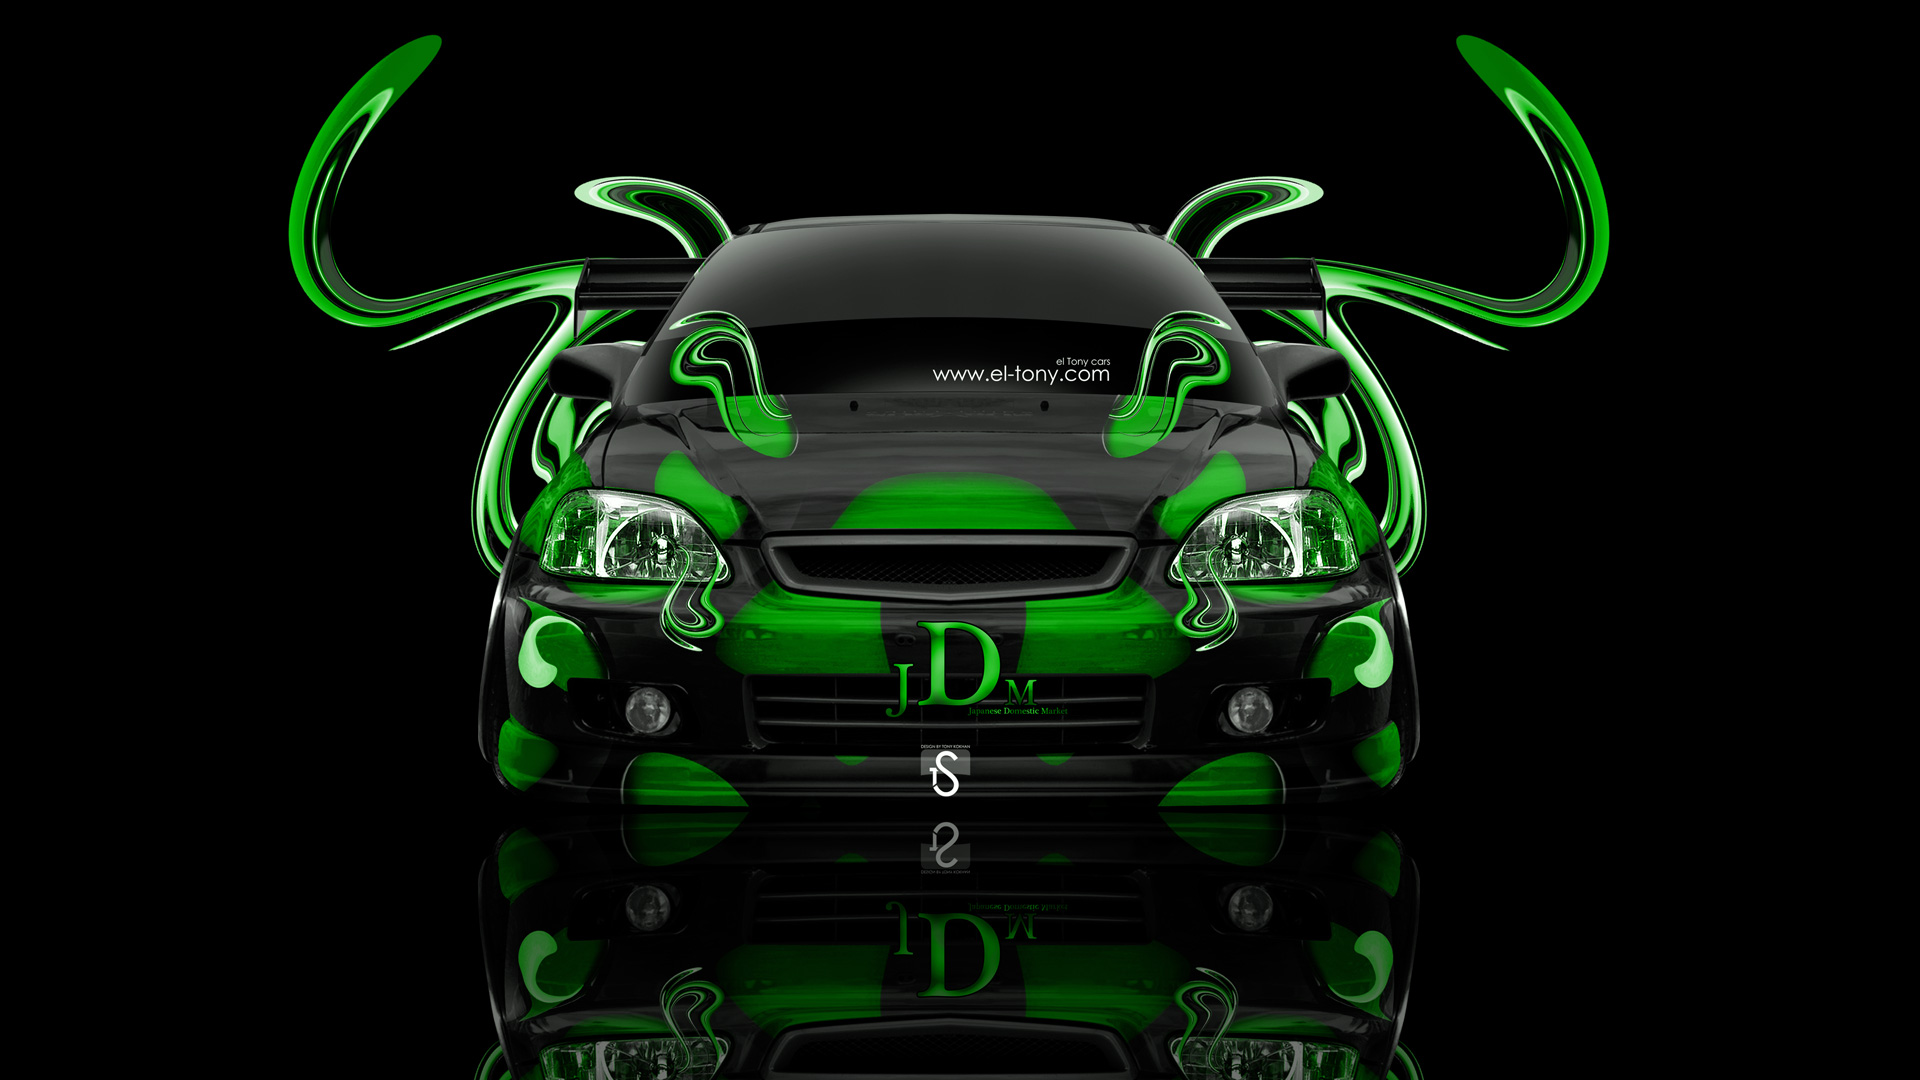 Awesome Honda Civic Tuning JDM Front Green Plastic Car